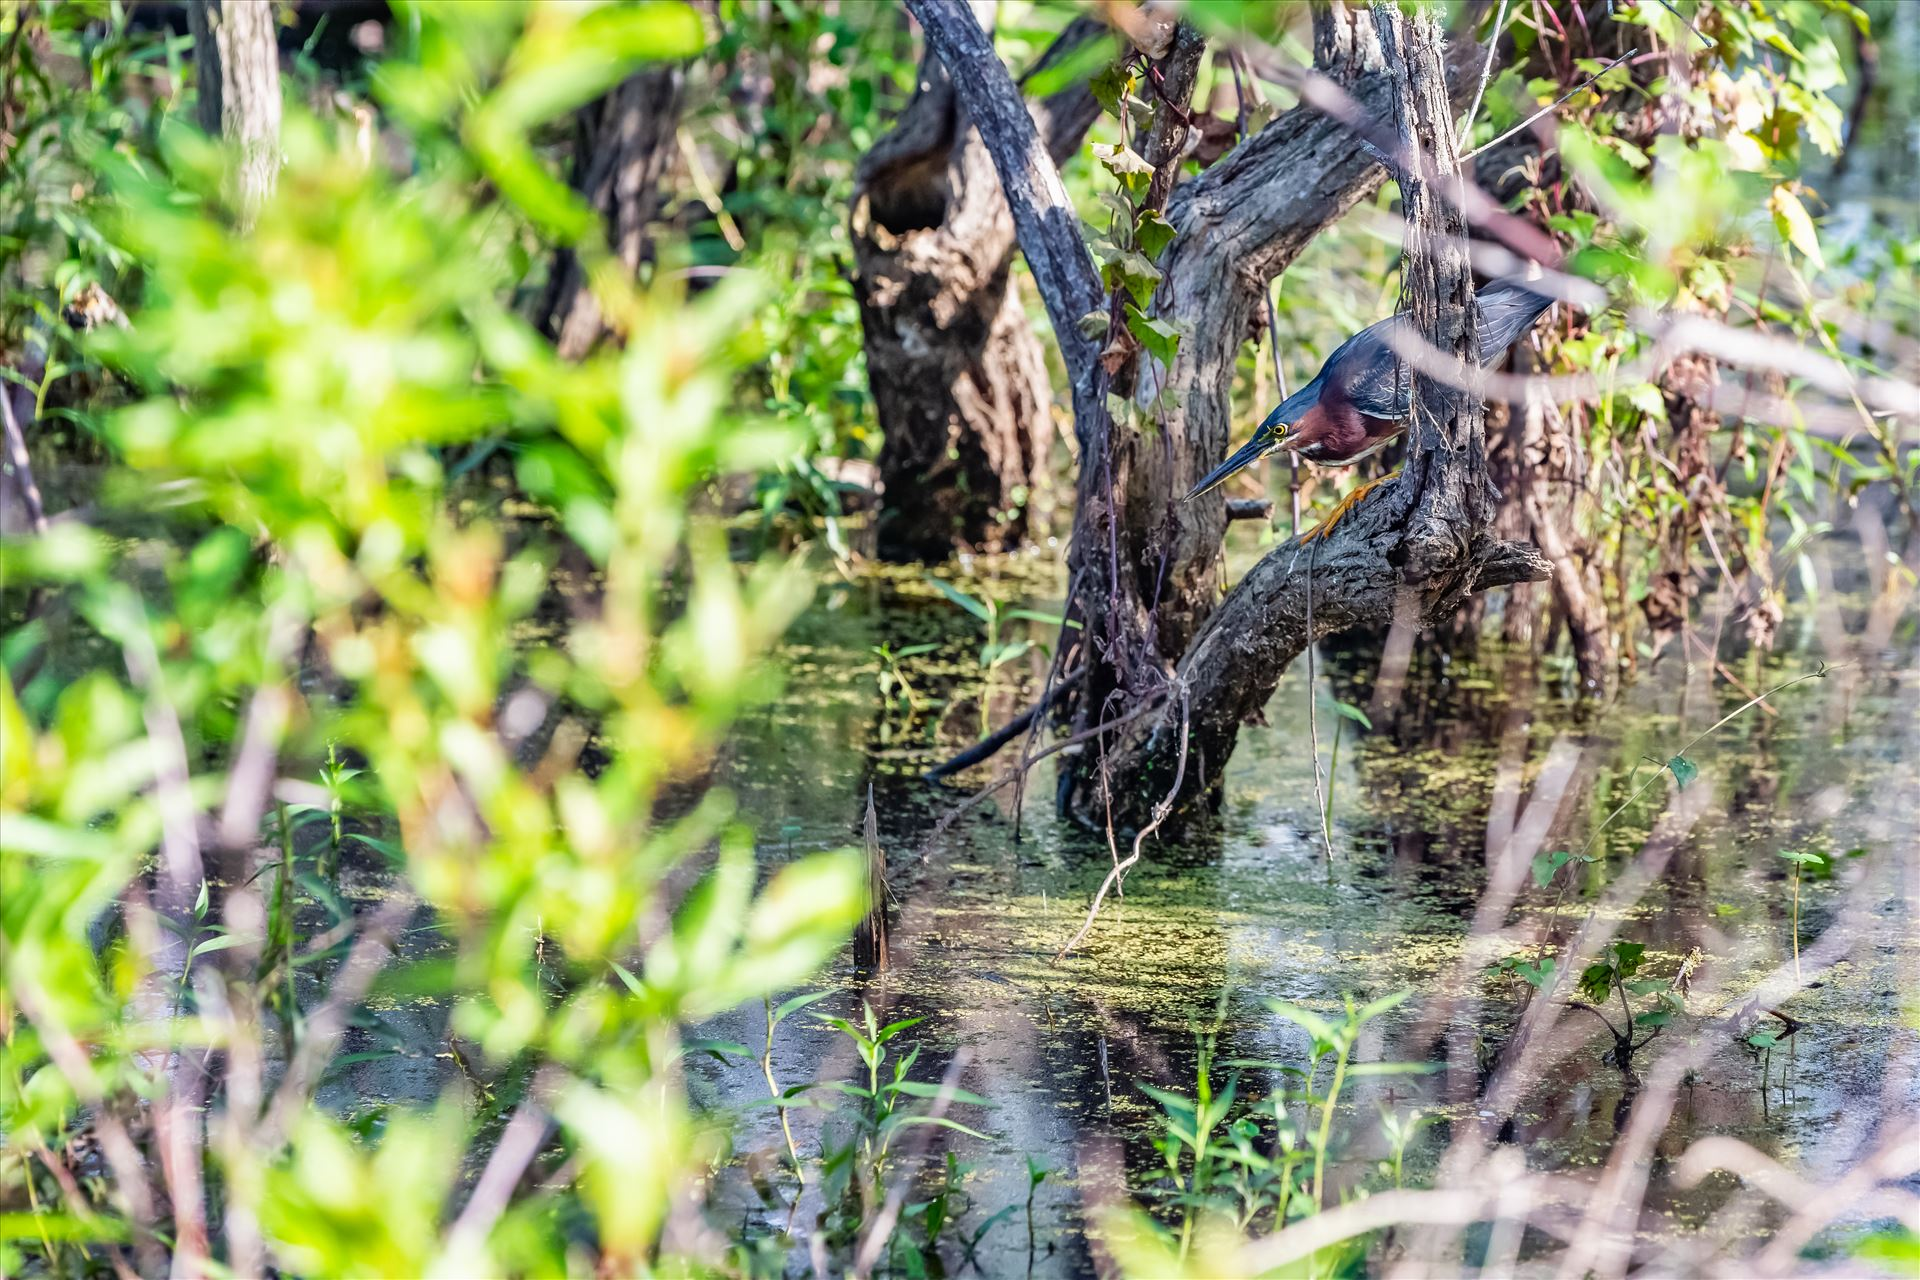 Green Heron green Heron stalking food in gator lake at St. Andrews State Park by Terry Kelly Photography